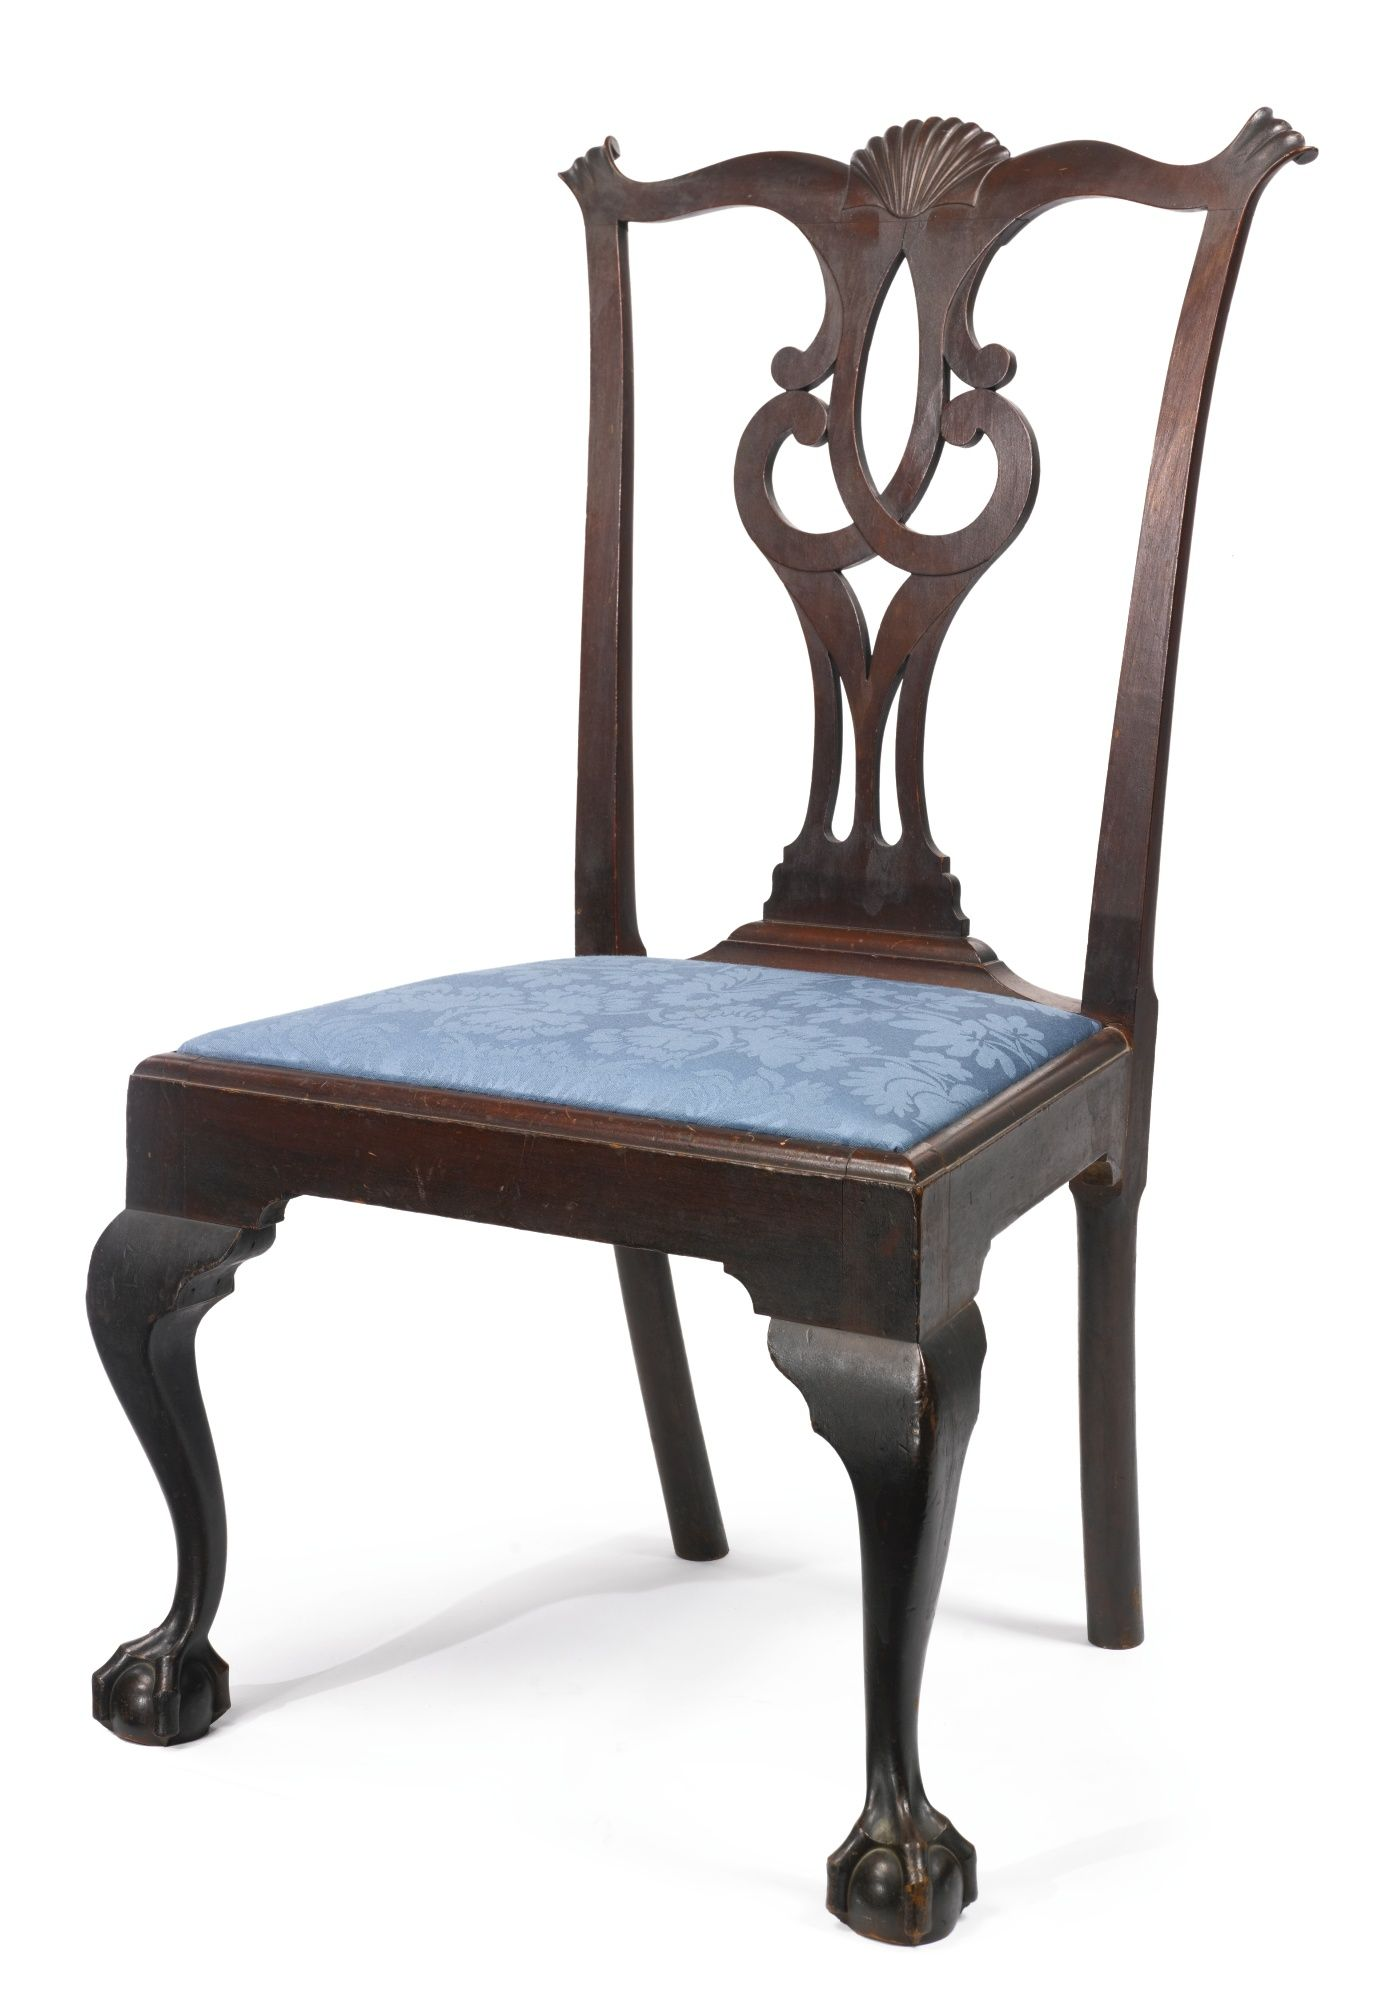 This israel sack american federal mahogany antique lolling arm chair - The Exceptional Alexander King Chippendale Carved Cherrywood Side Chair Made By Eliphalet Chapin East Windsor Connecticut 1781 Sotheby S